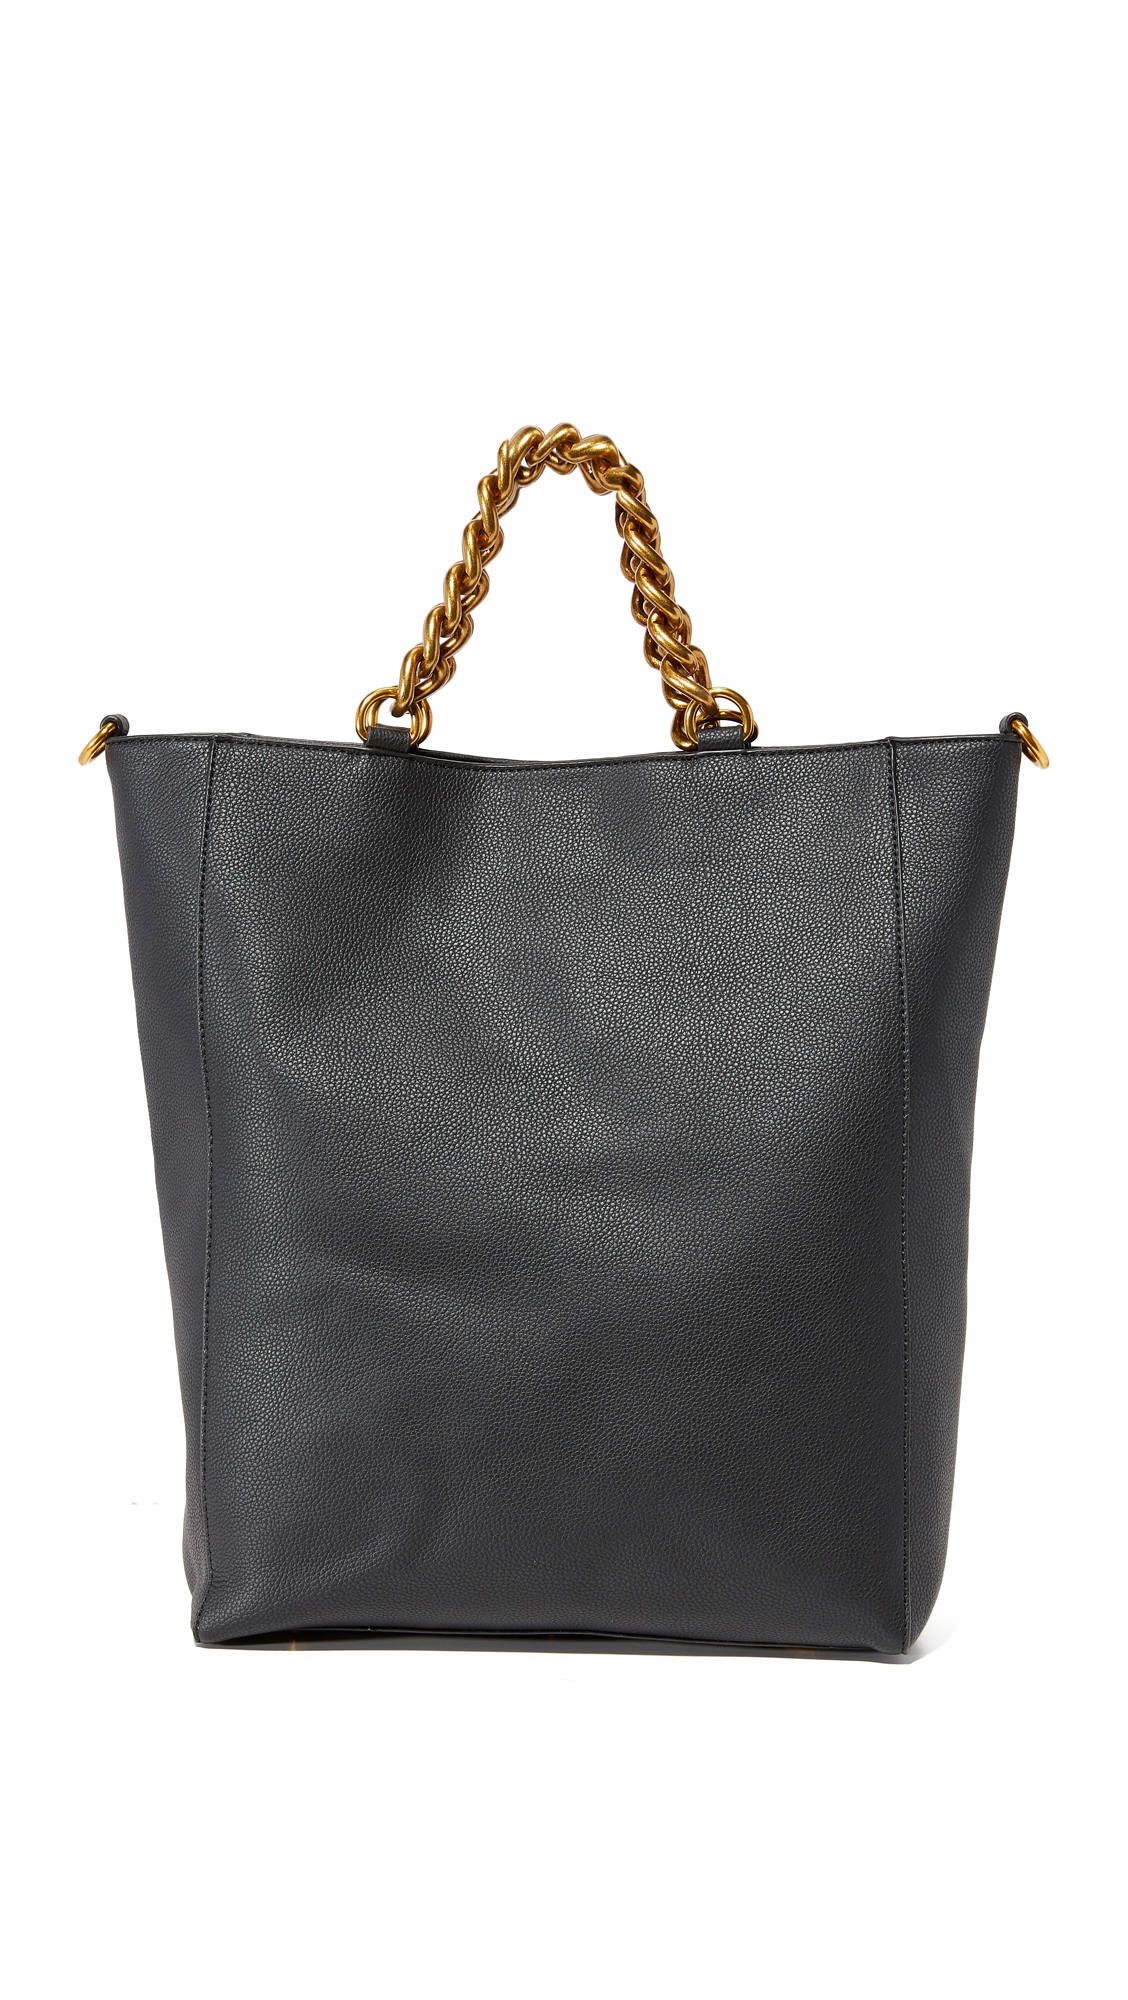 Deux Lux Roma North / South Tote - Black